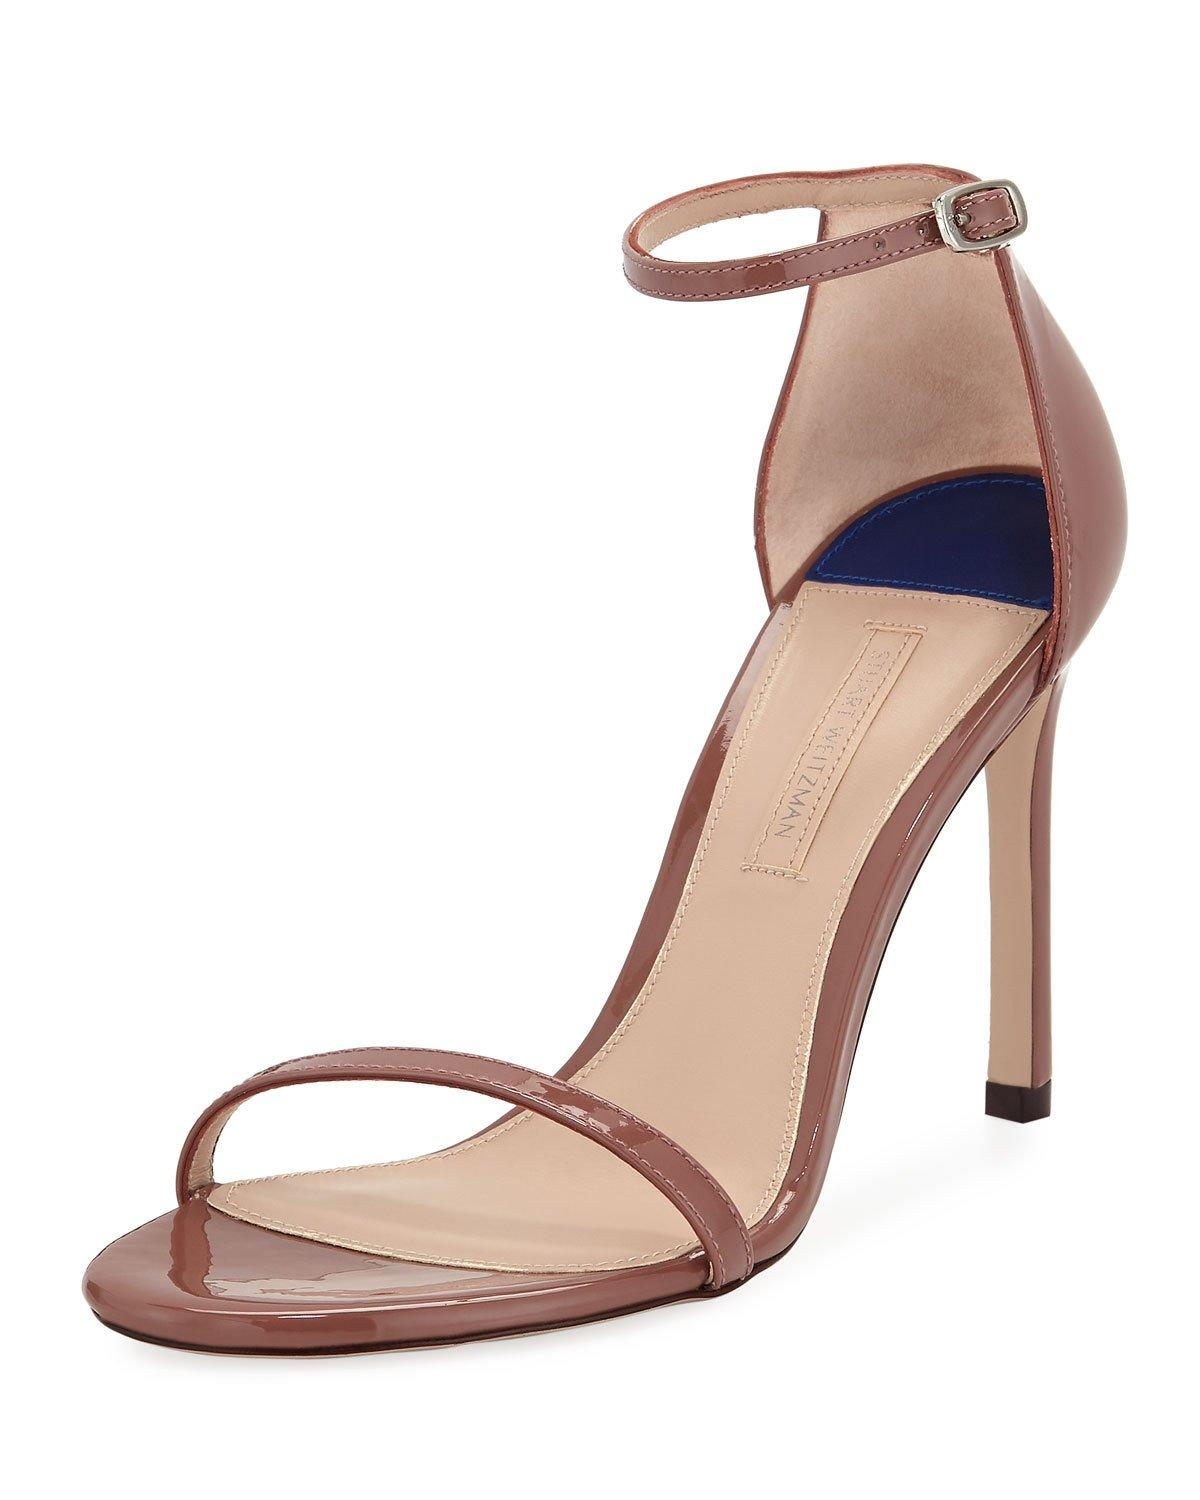 43d2d28bb8c7 Stuart Weitzman Nudistsong Patent Strappy Sandals In Rose Clay ...